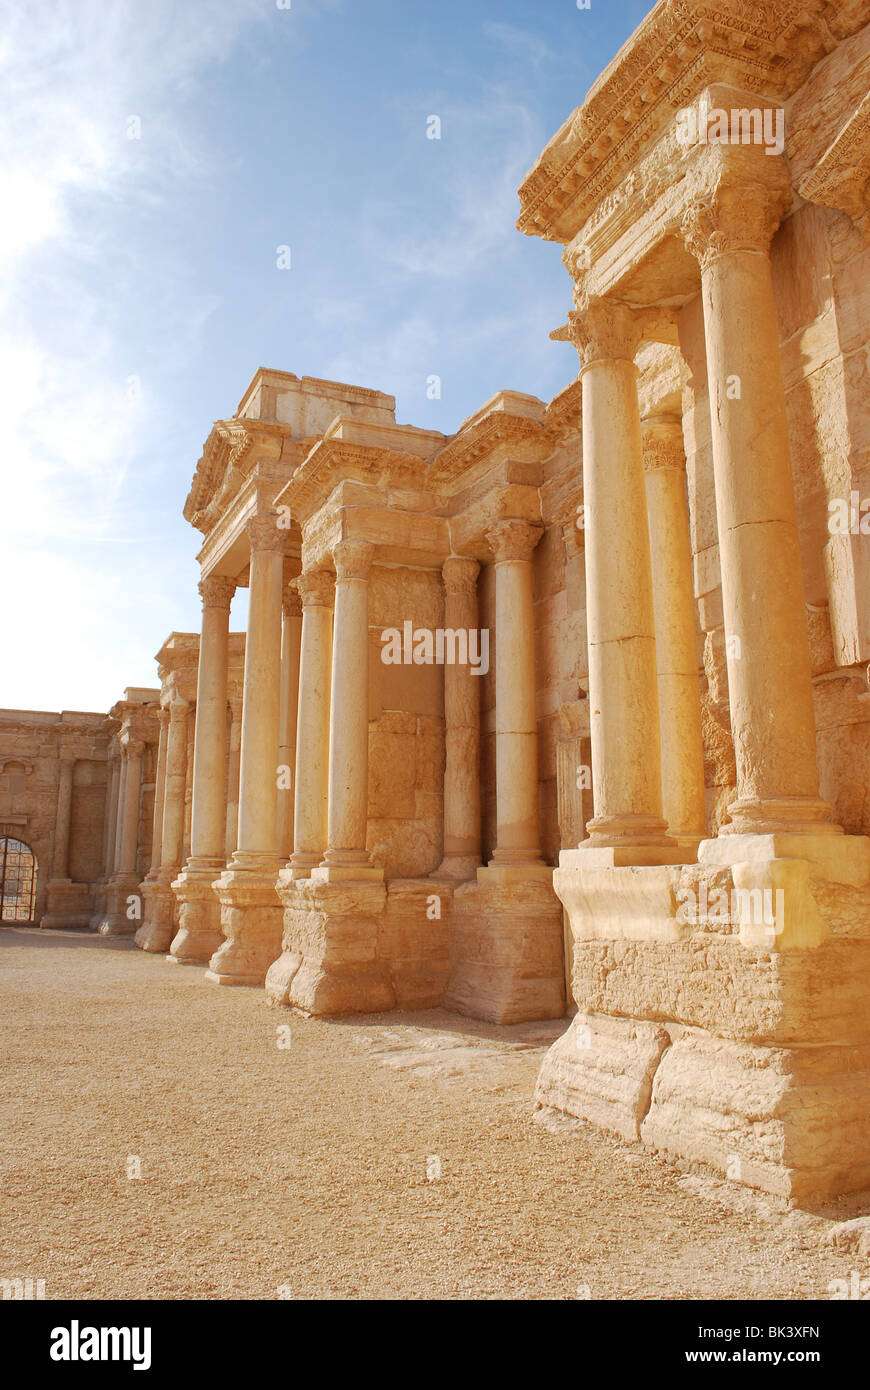 Theater in the ruins of the Palmyra archeological site, Tadmur, Syria, Asia - Stock Image